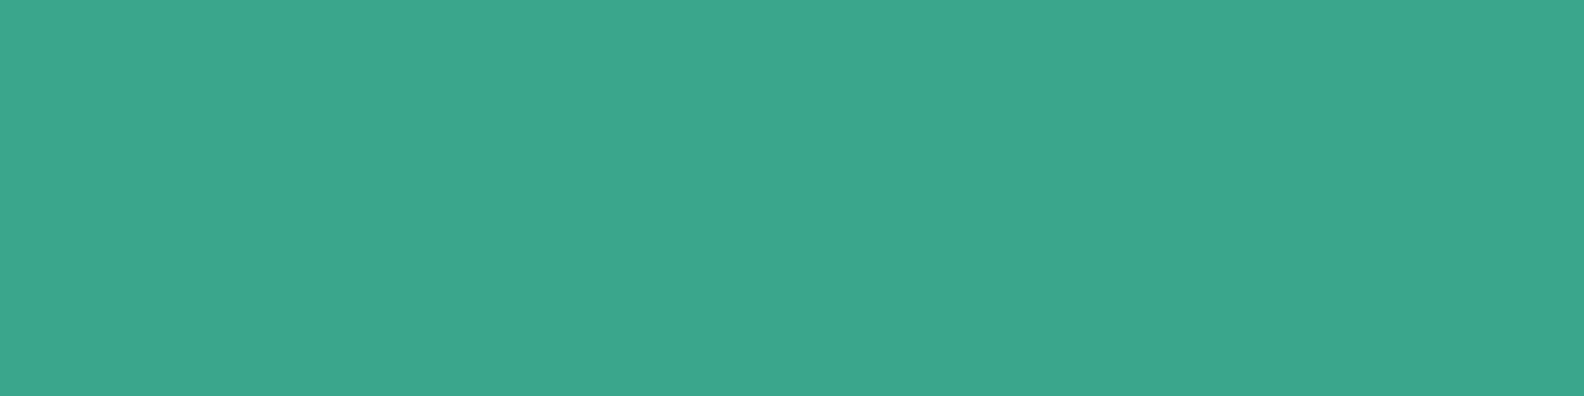 1584x396 Zomp Solid Color Background